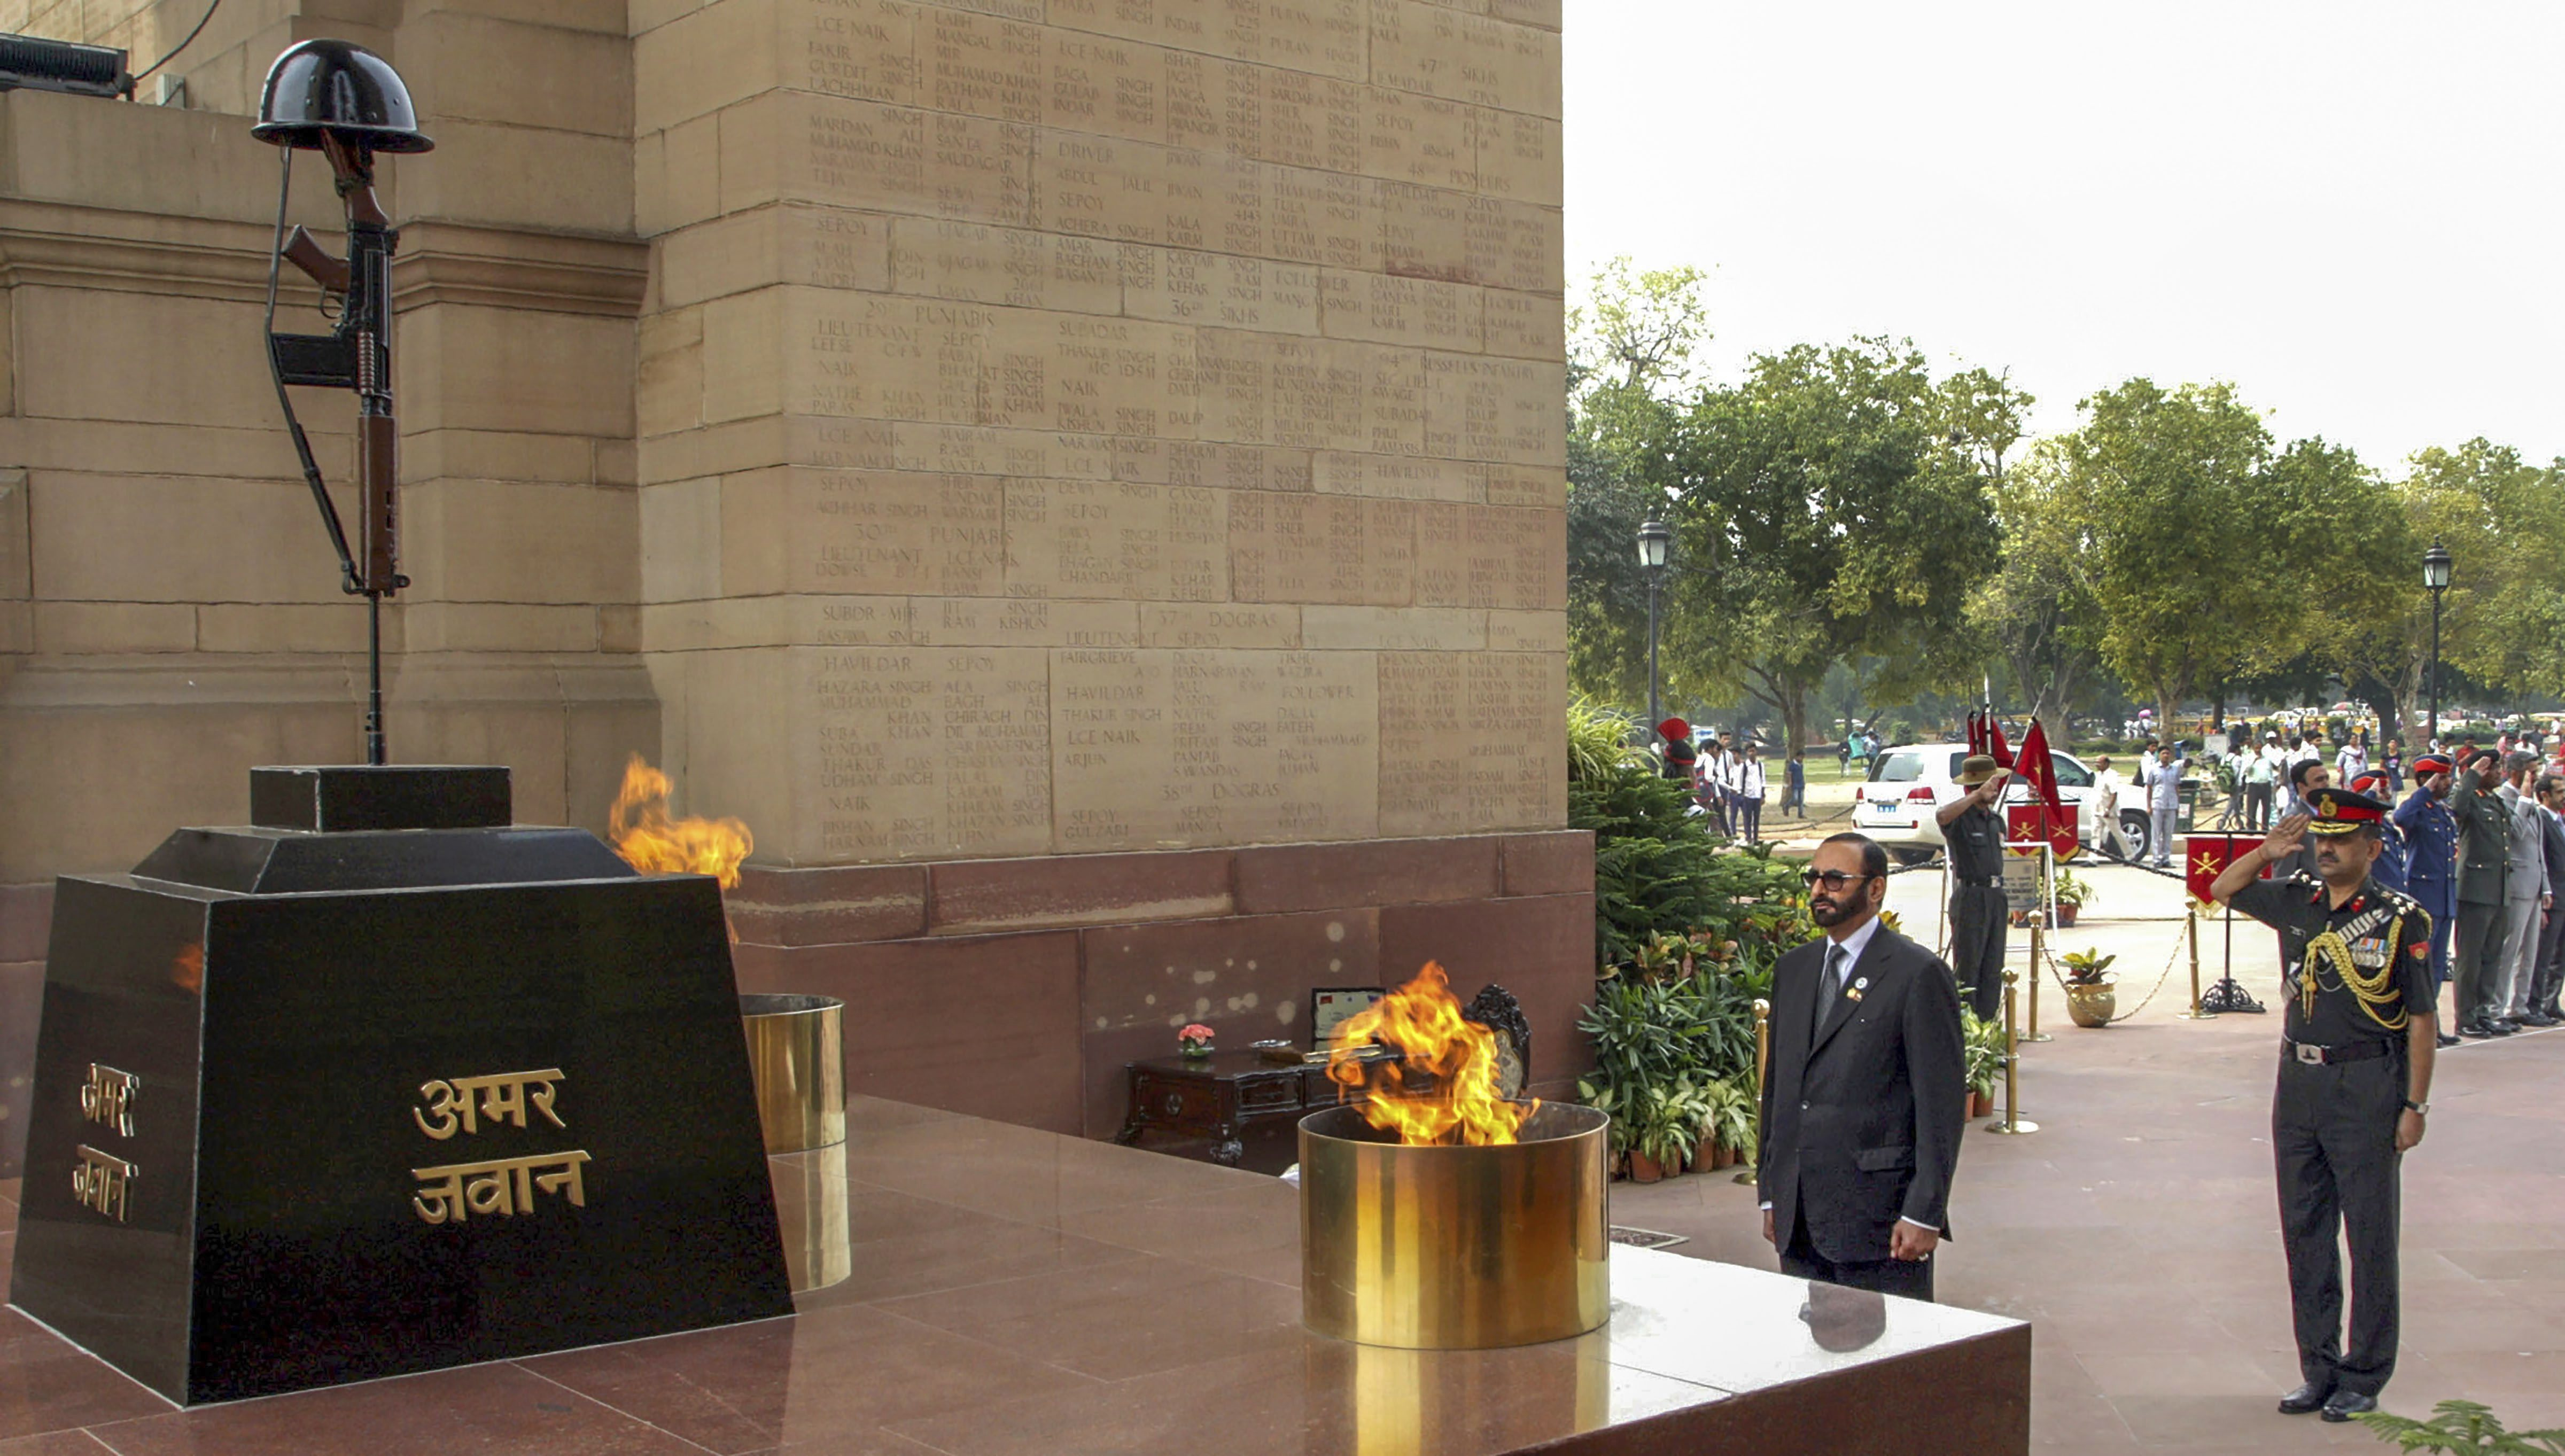 UAE Minister of State for Defence Affairs Mohammed Ahmed Al Bowardi pays homage to the martyrs, at Amar Jawan Jyoti near India Gate in New Delhi - PTI